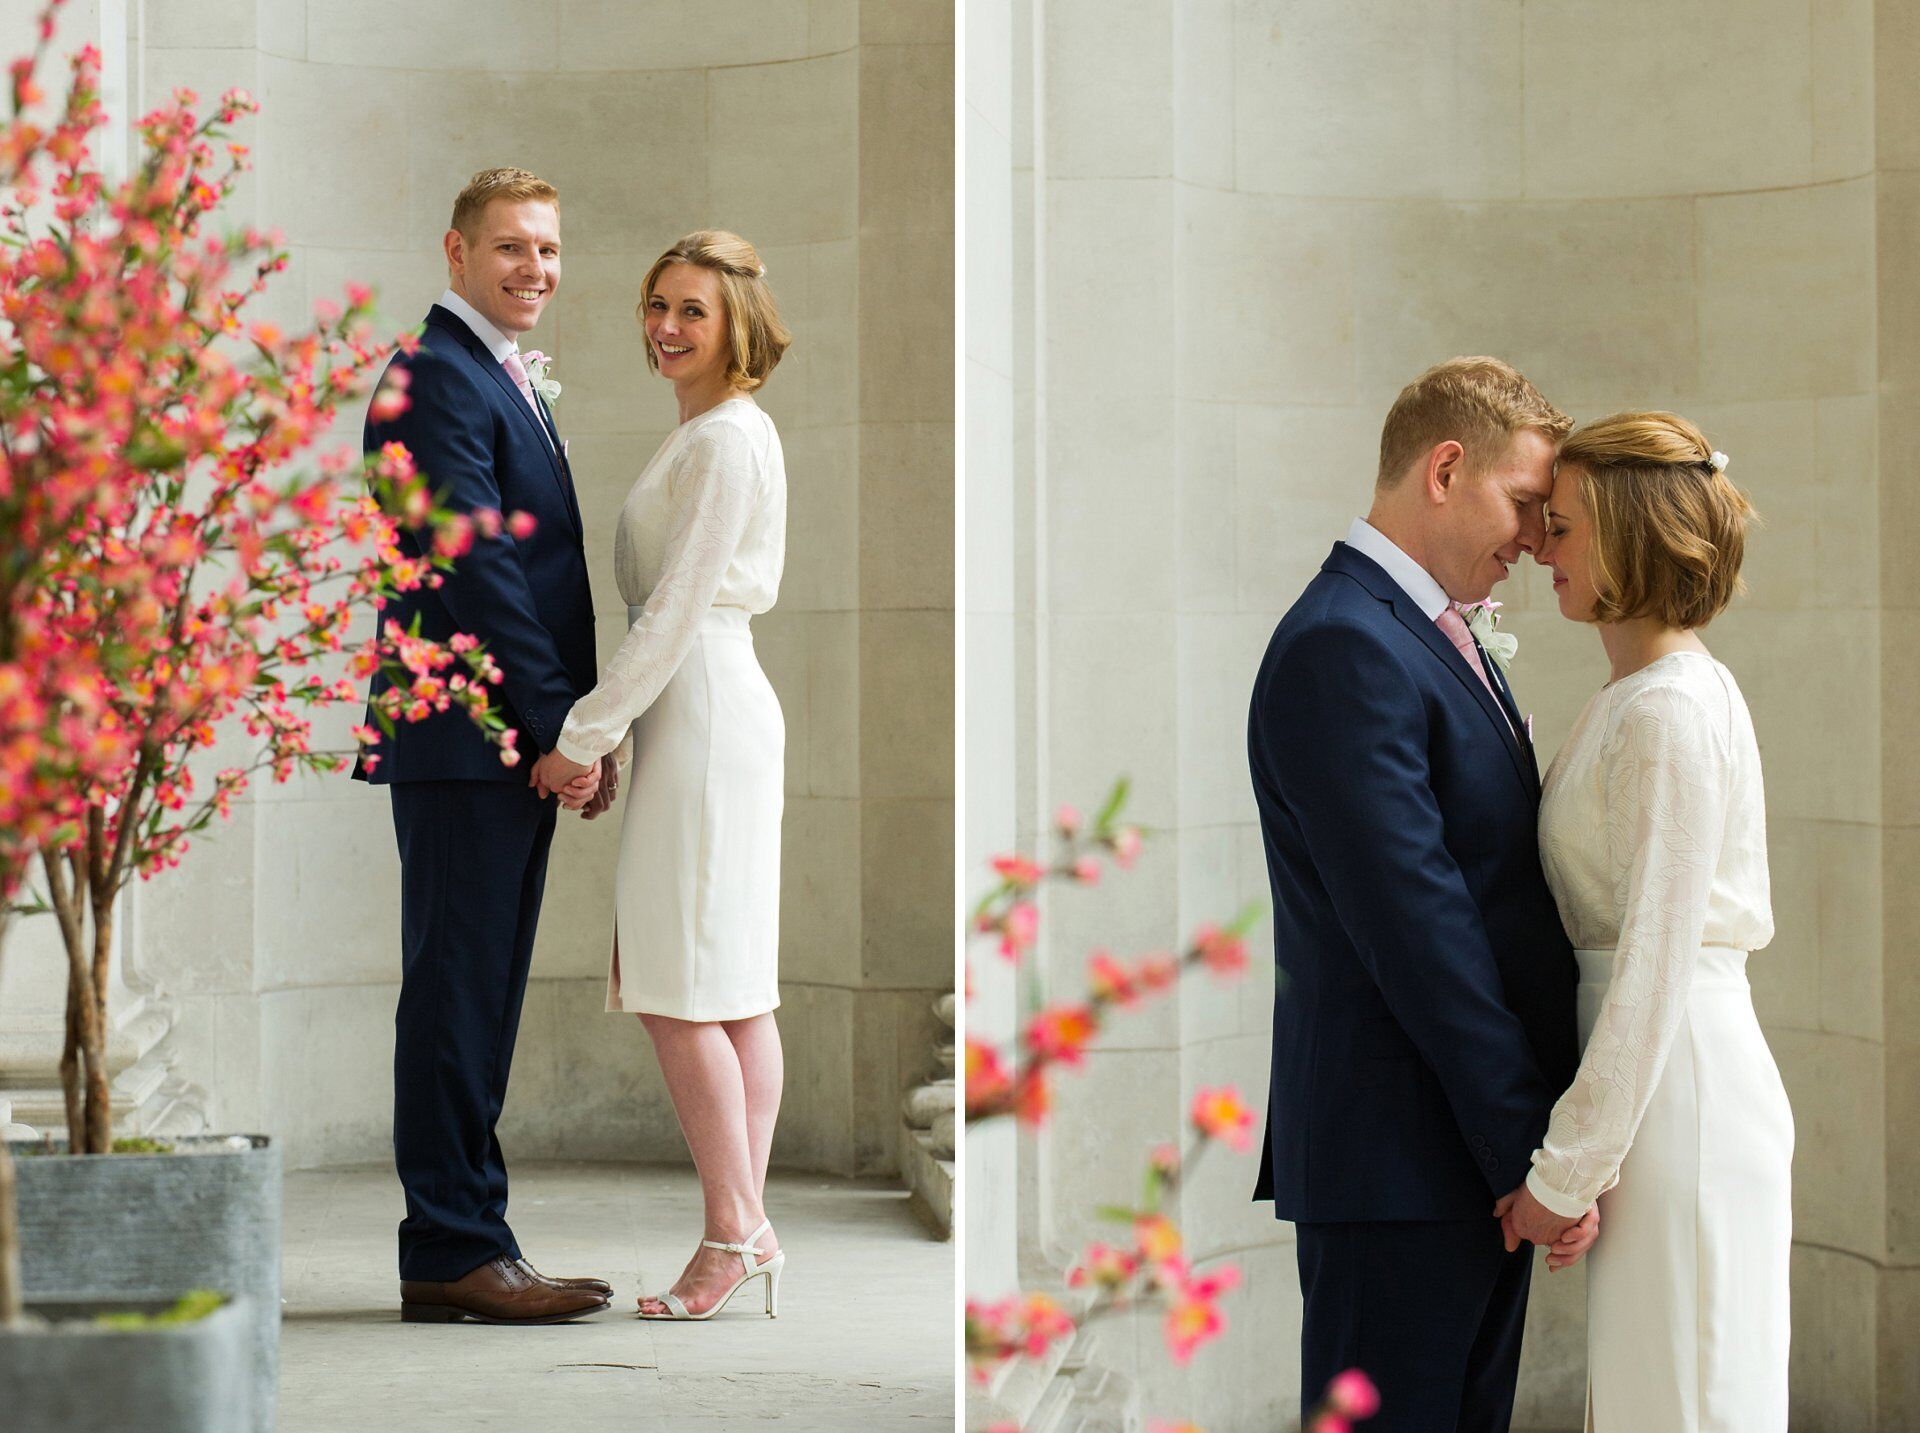 characterful bride and groom wedding portraits by old marylebone town hall specialist emma duggan